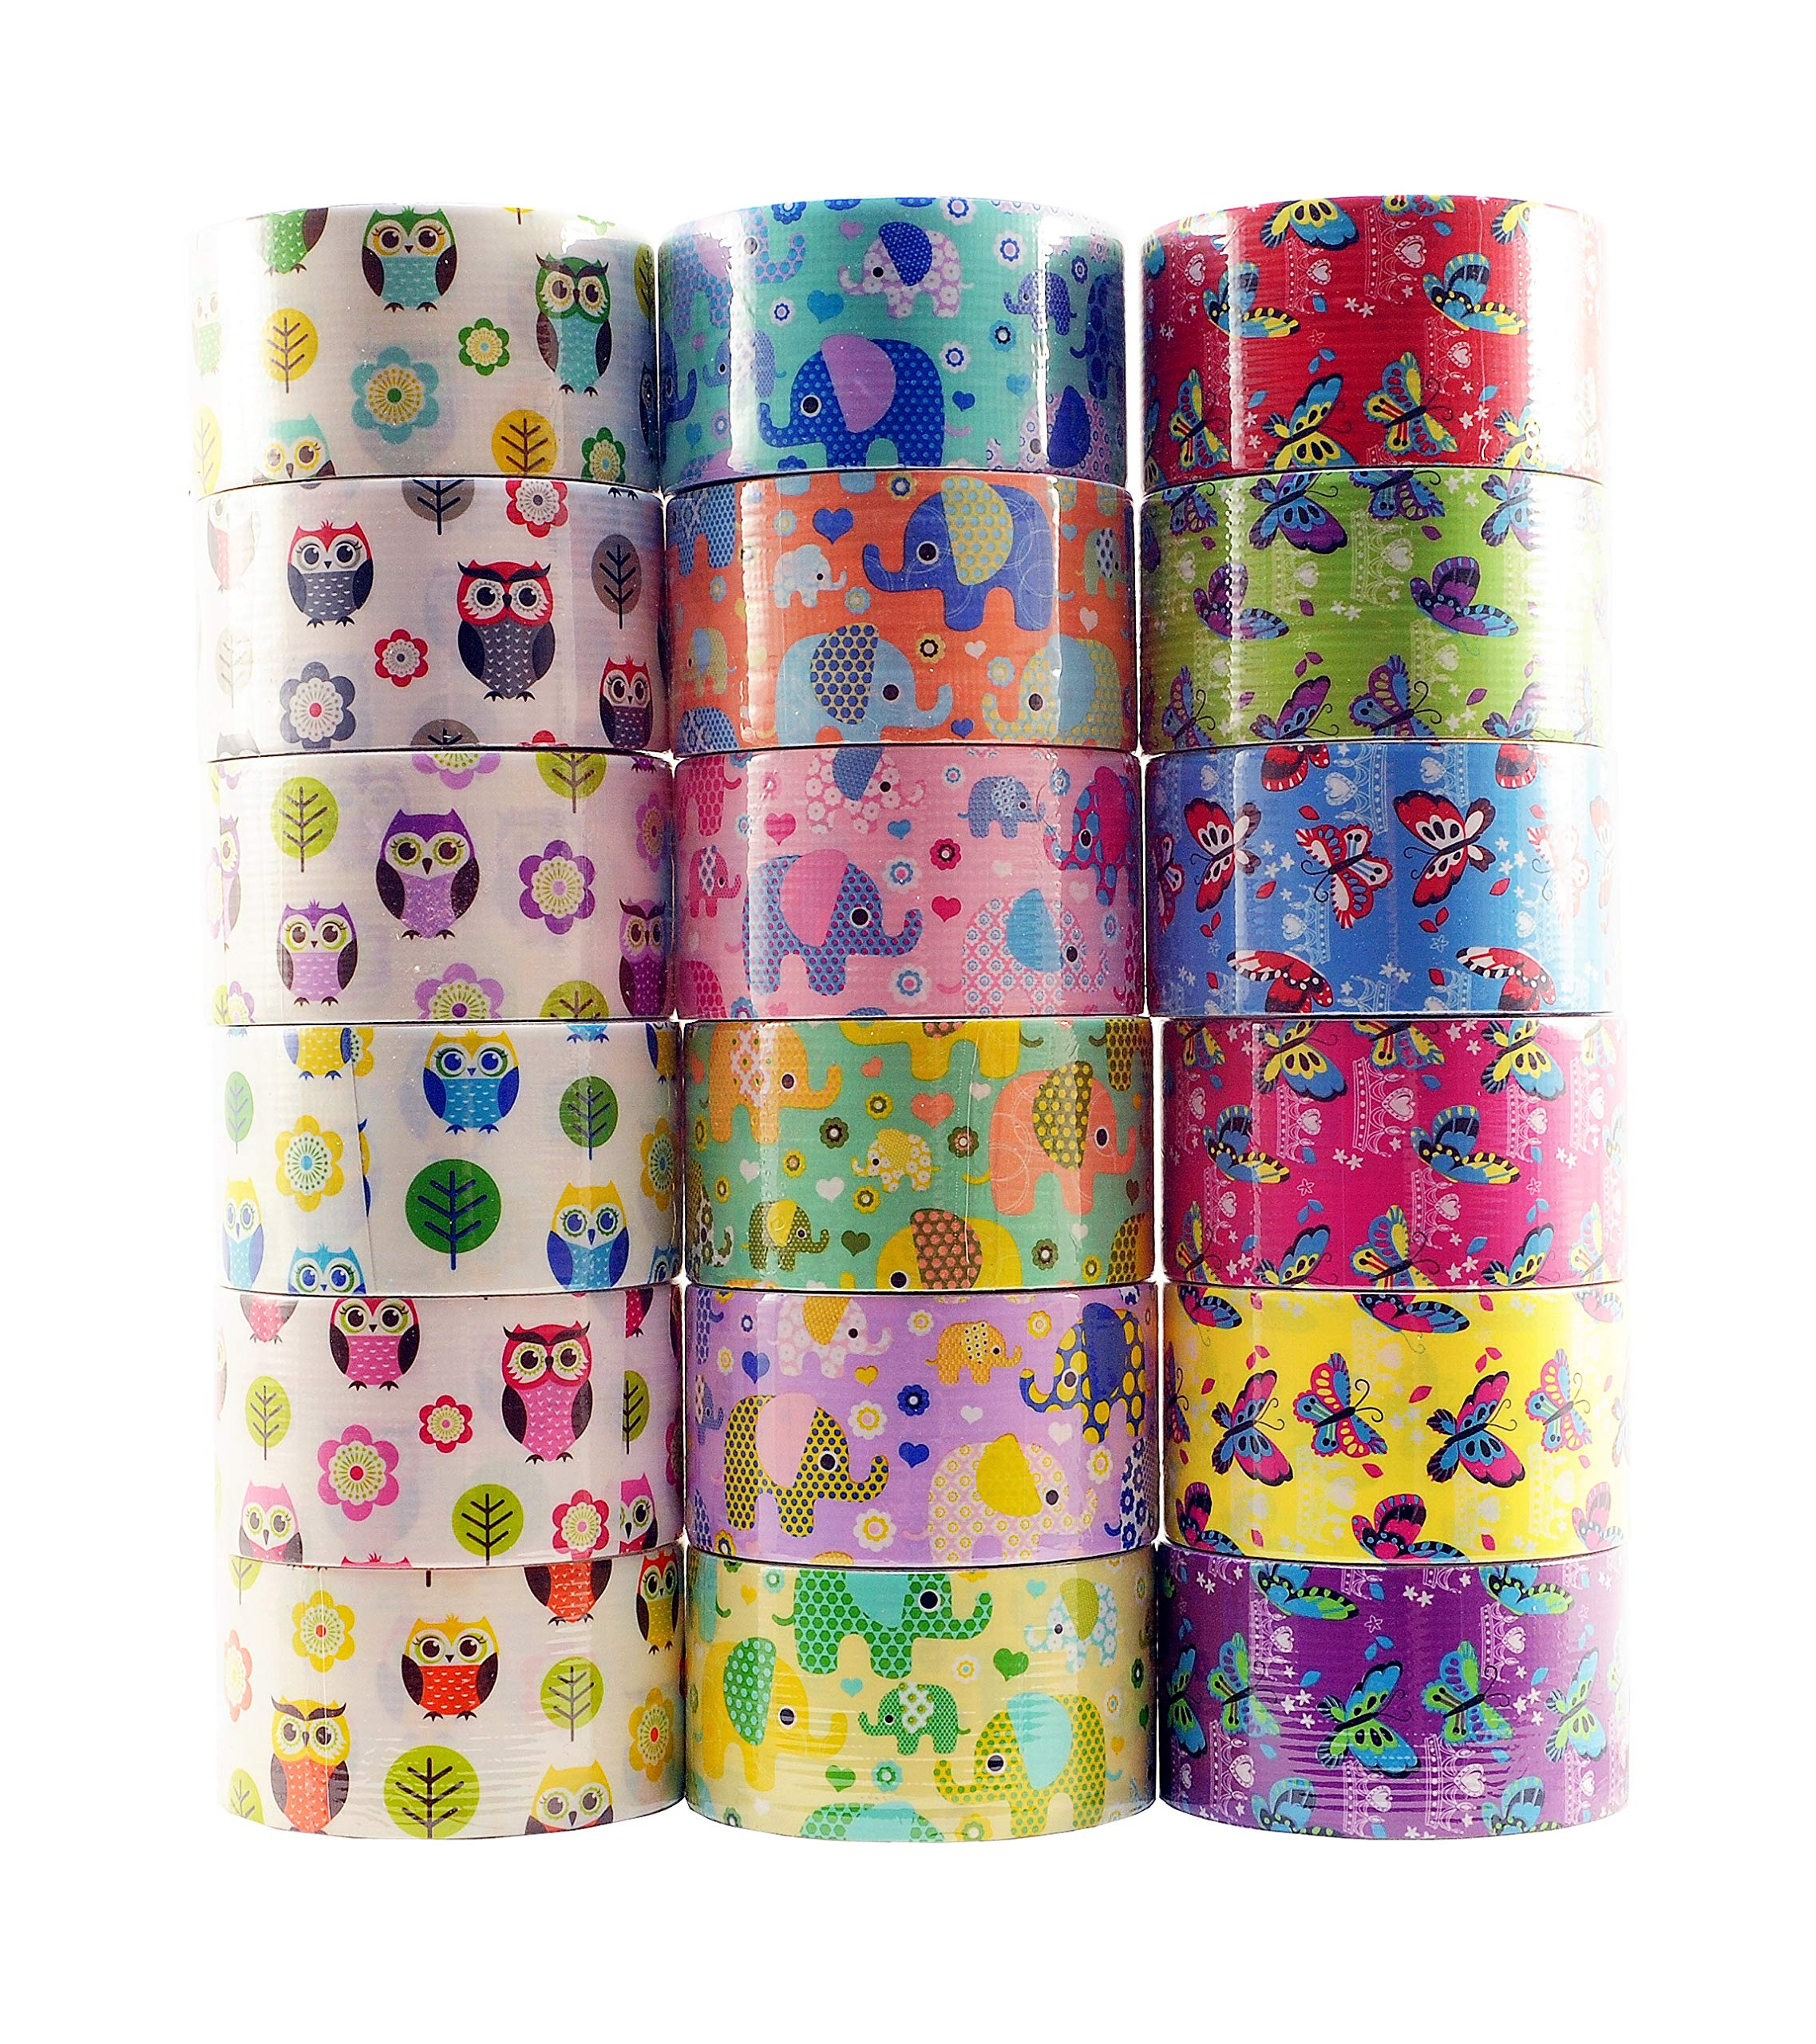 18 Roll Variety Pack of Decorative Duct Style Tape, Each Roll 1.88 Inch x 5 Yards, Ideal for Scrapbooking - Decorating - Signage (6 Elephant + 6 Owl + 6 Butterfly)